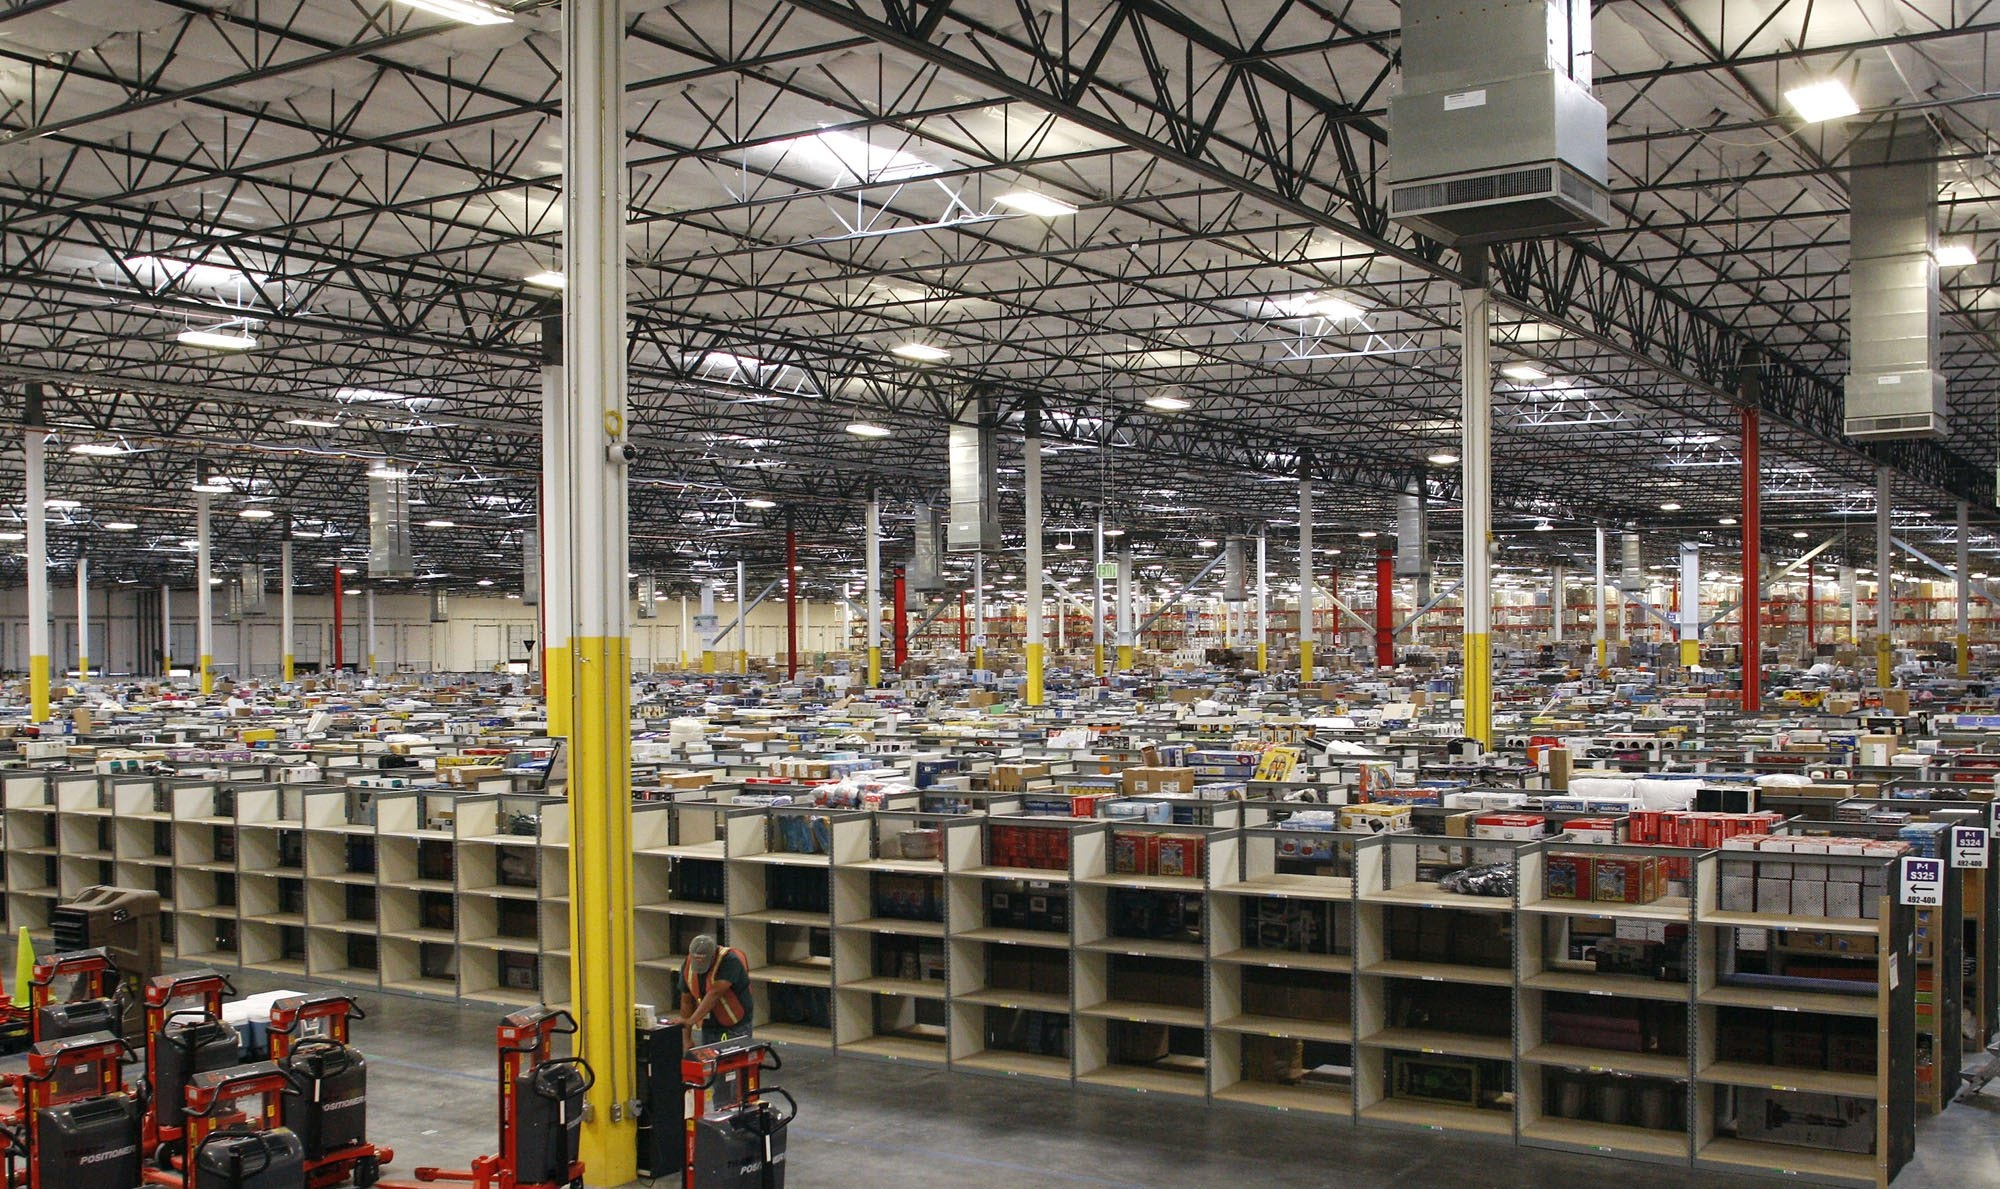 Amazon.com is quickly putting up more warehouses like this one in Goodyear, Ariz., amid growing competition.